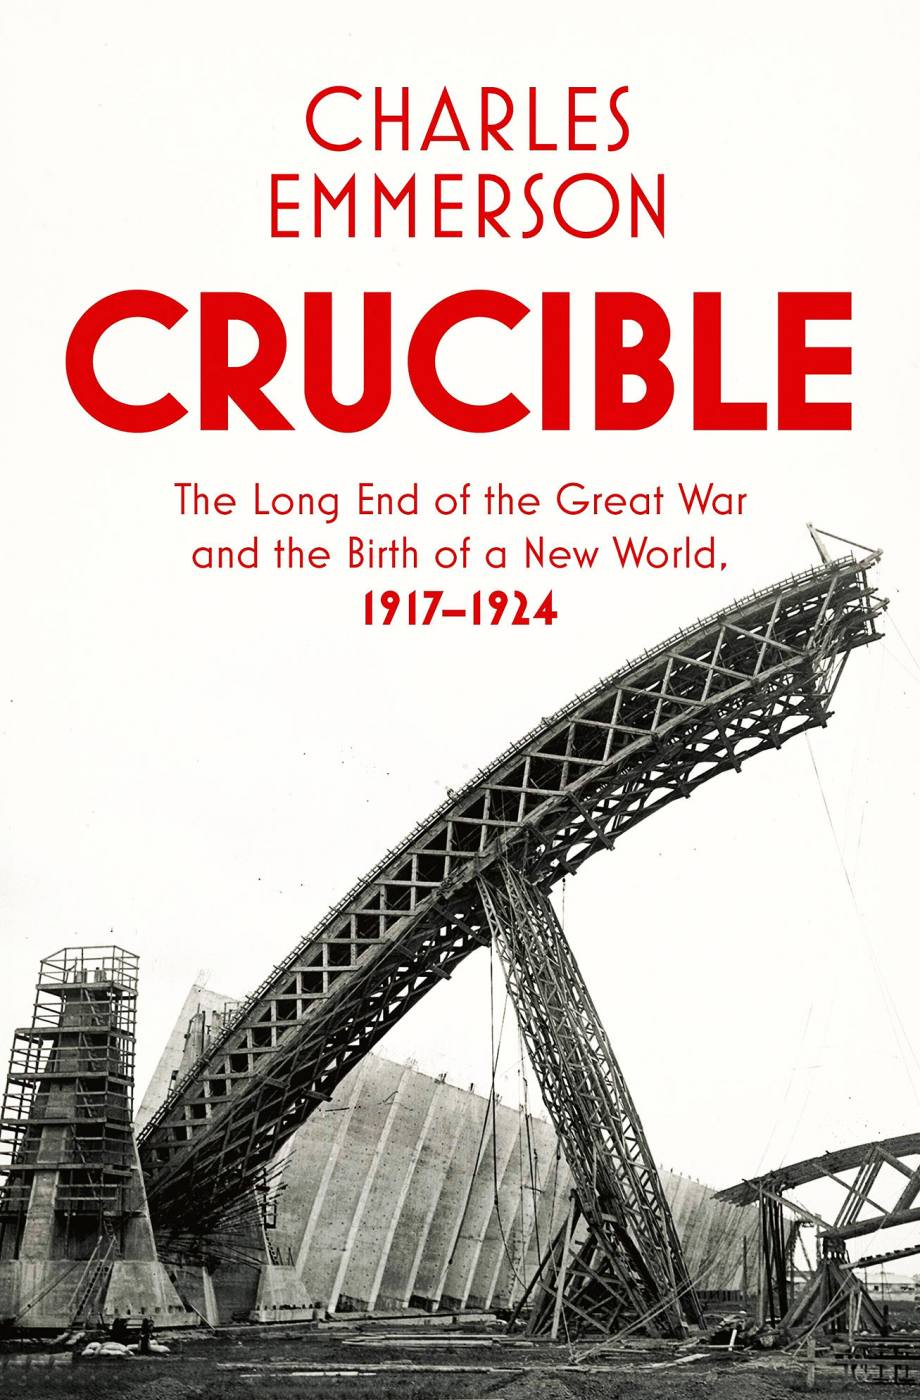 Crucible: The Long End of the Great War and the Birth of a New World